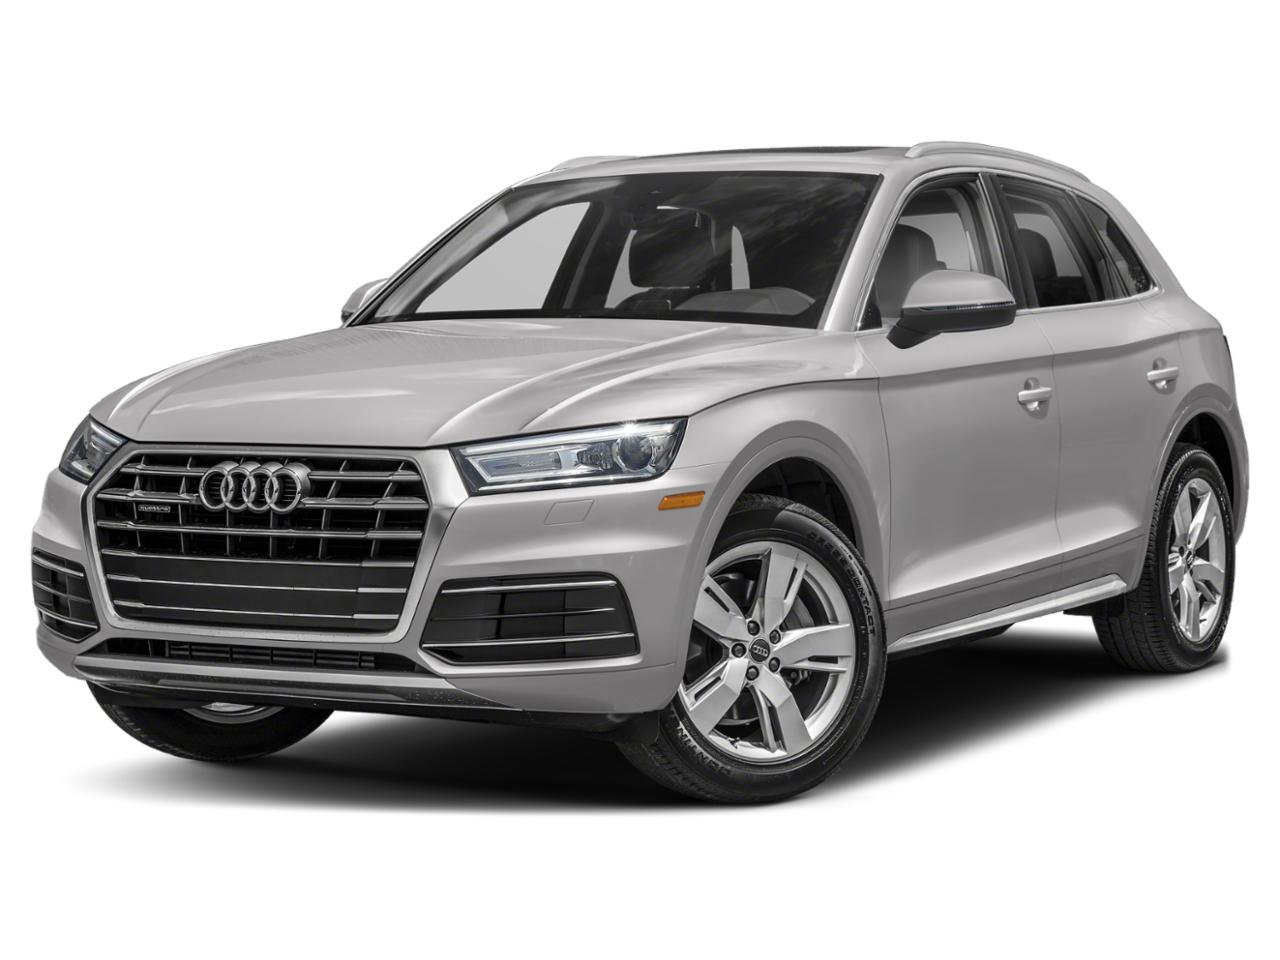 2019 Audi Q5 Vehicle Photo in Wasilla, AK 99654